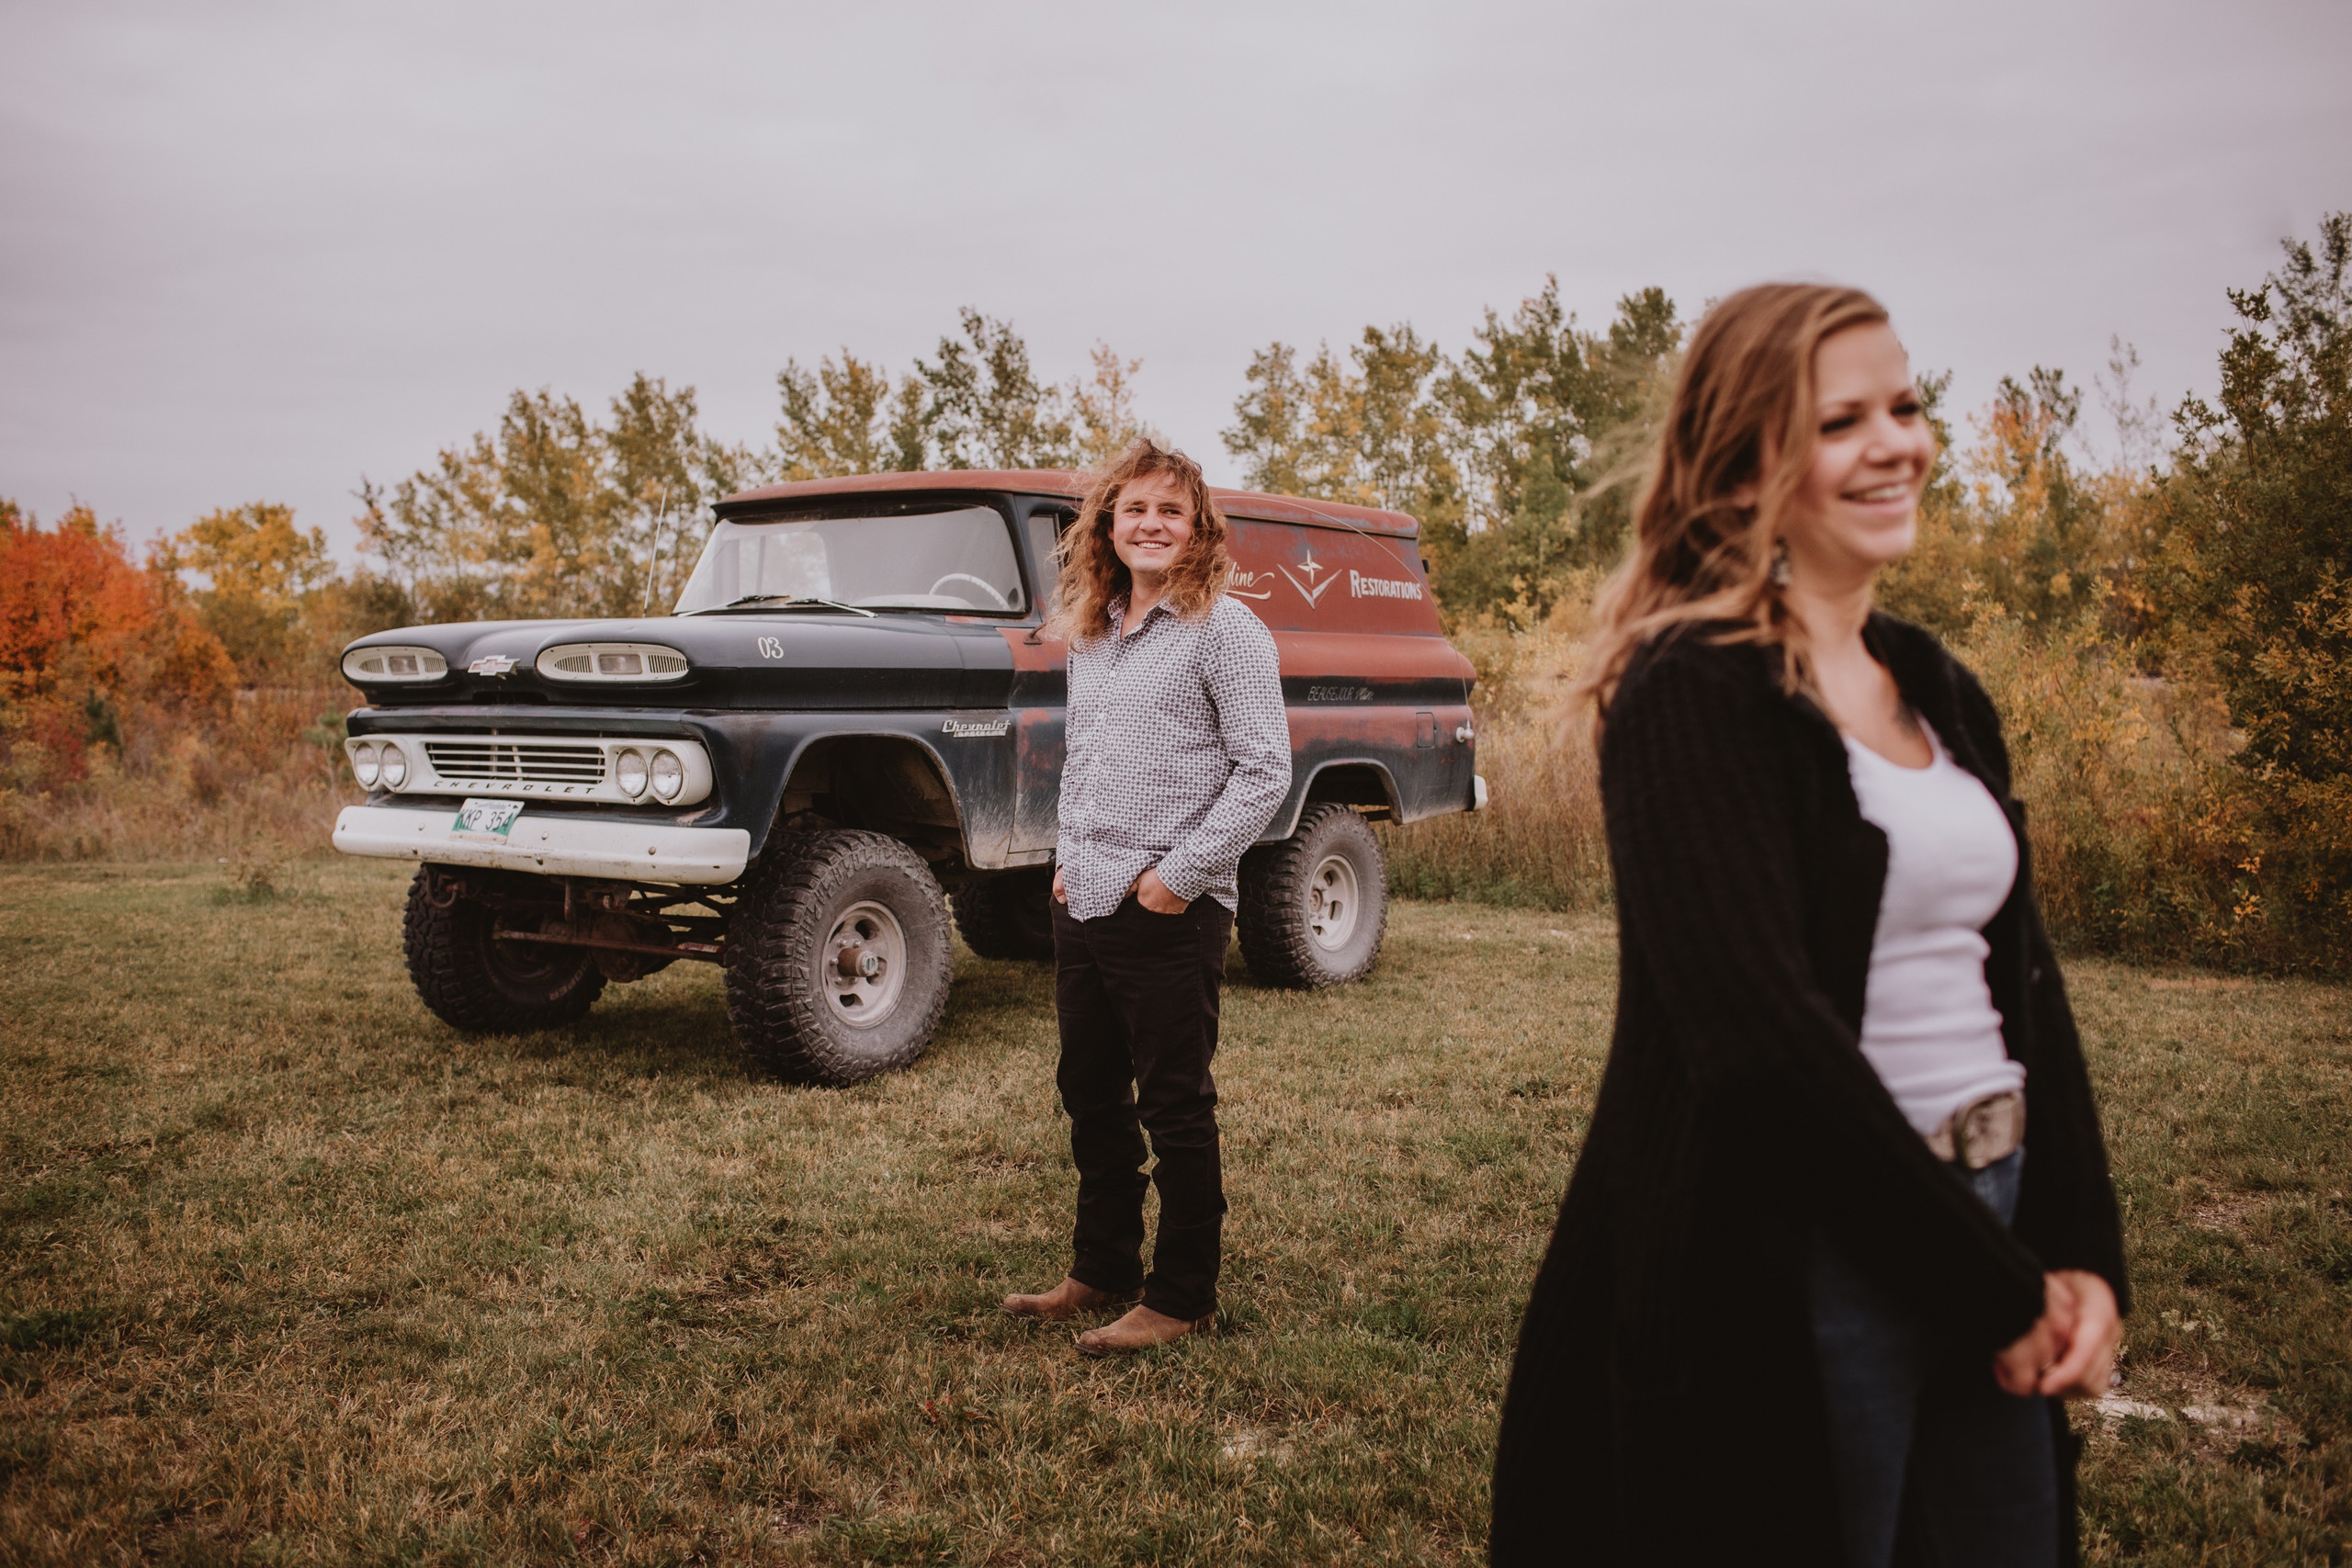 Fall engagement Photo session featuring vintage truck.